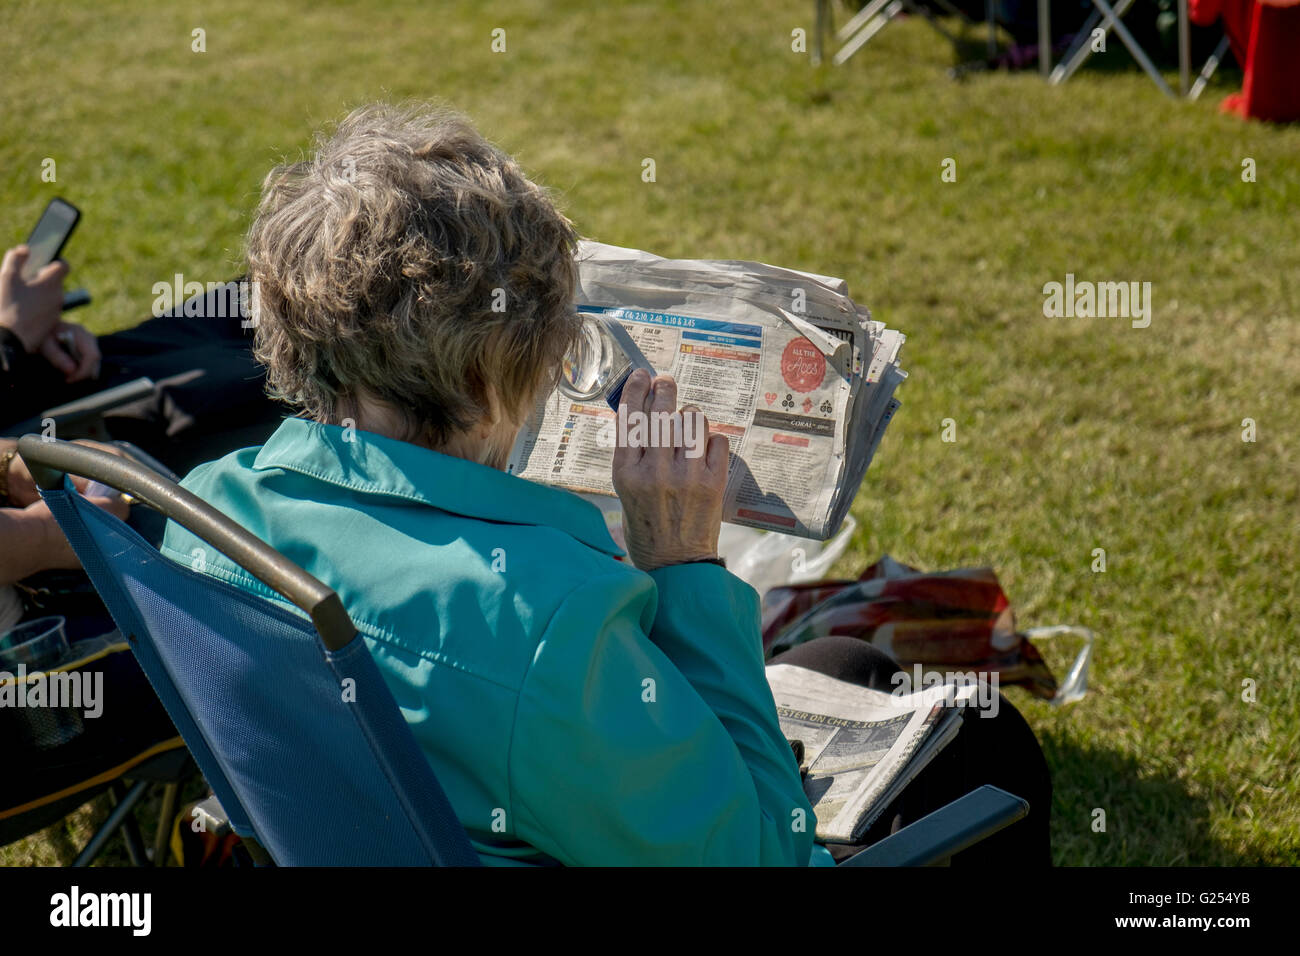 A lady checks the form guide at Chester Racecourse, Chester, Cheshire, UK - Stock Image